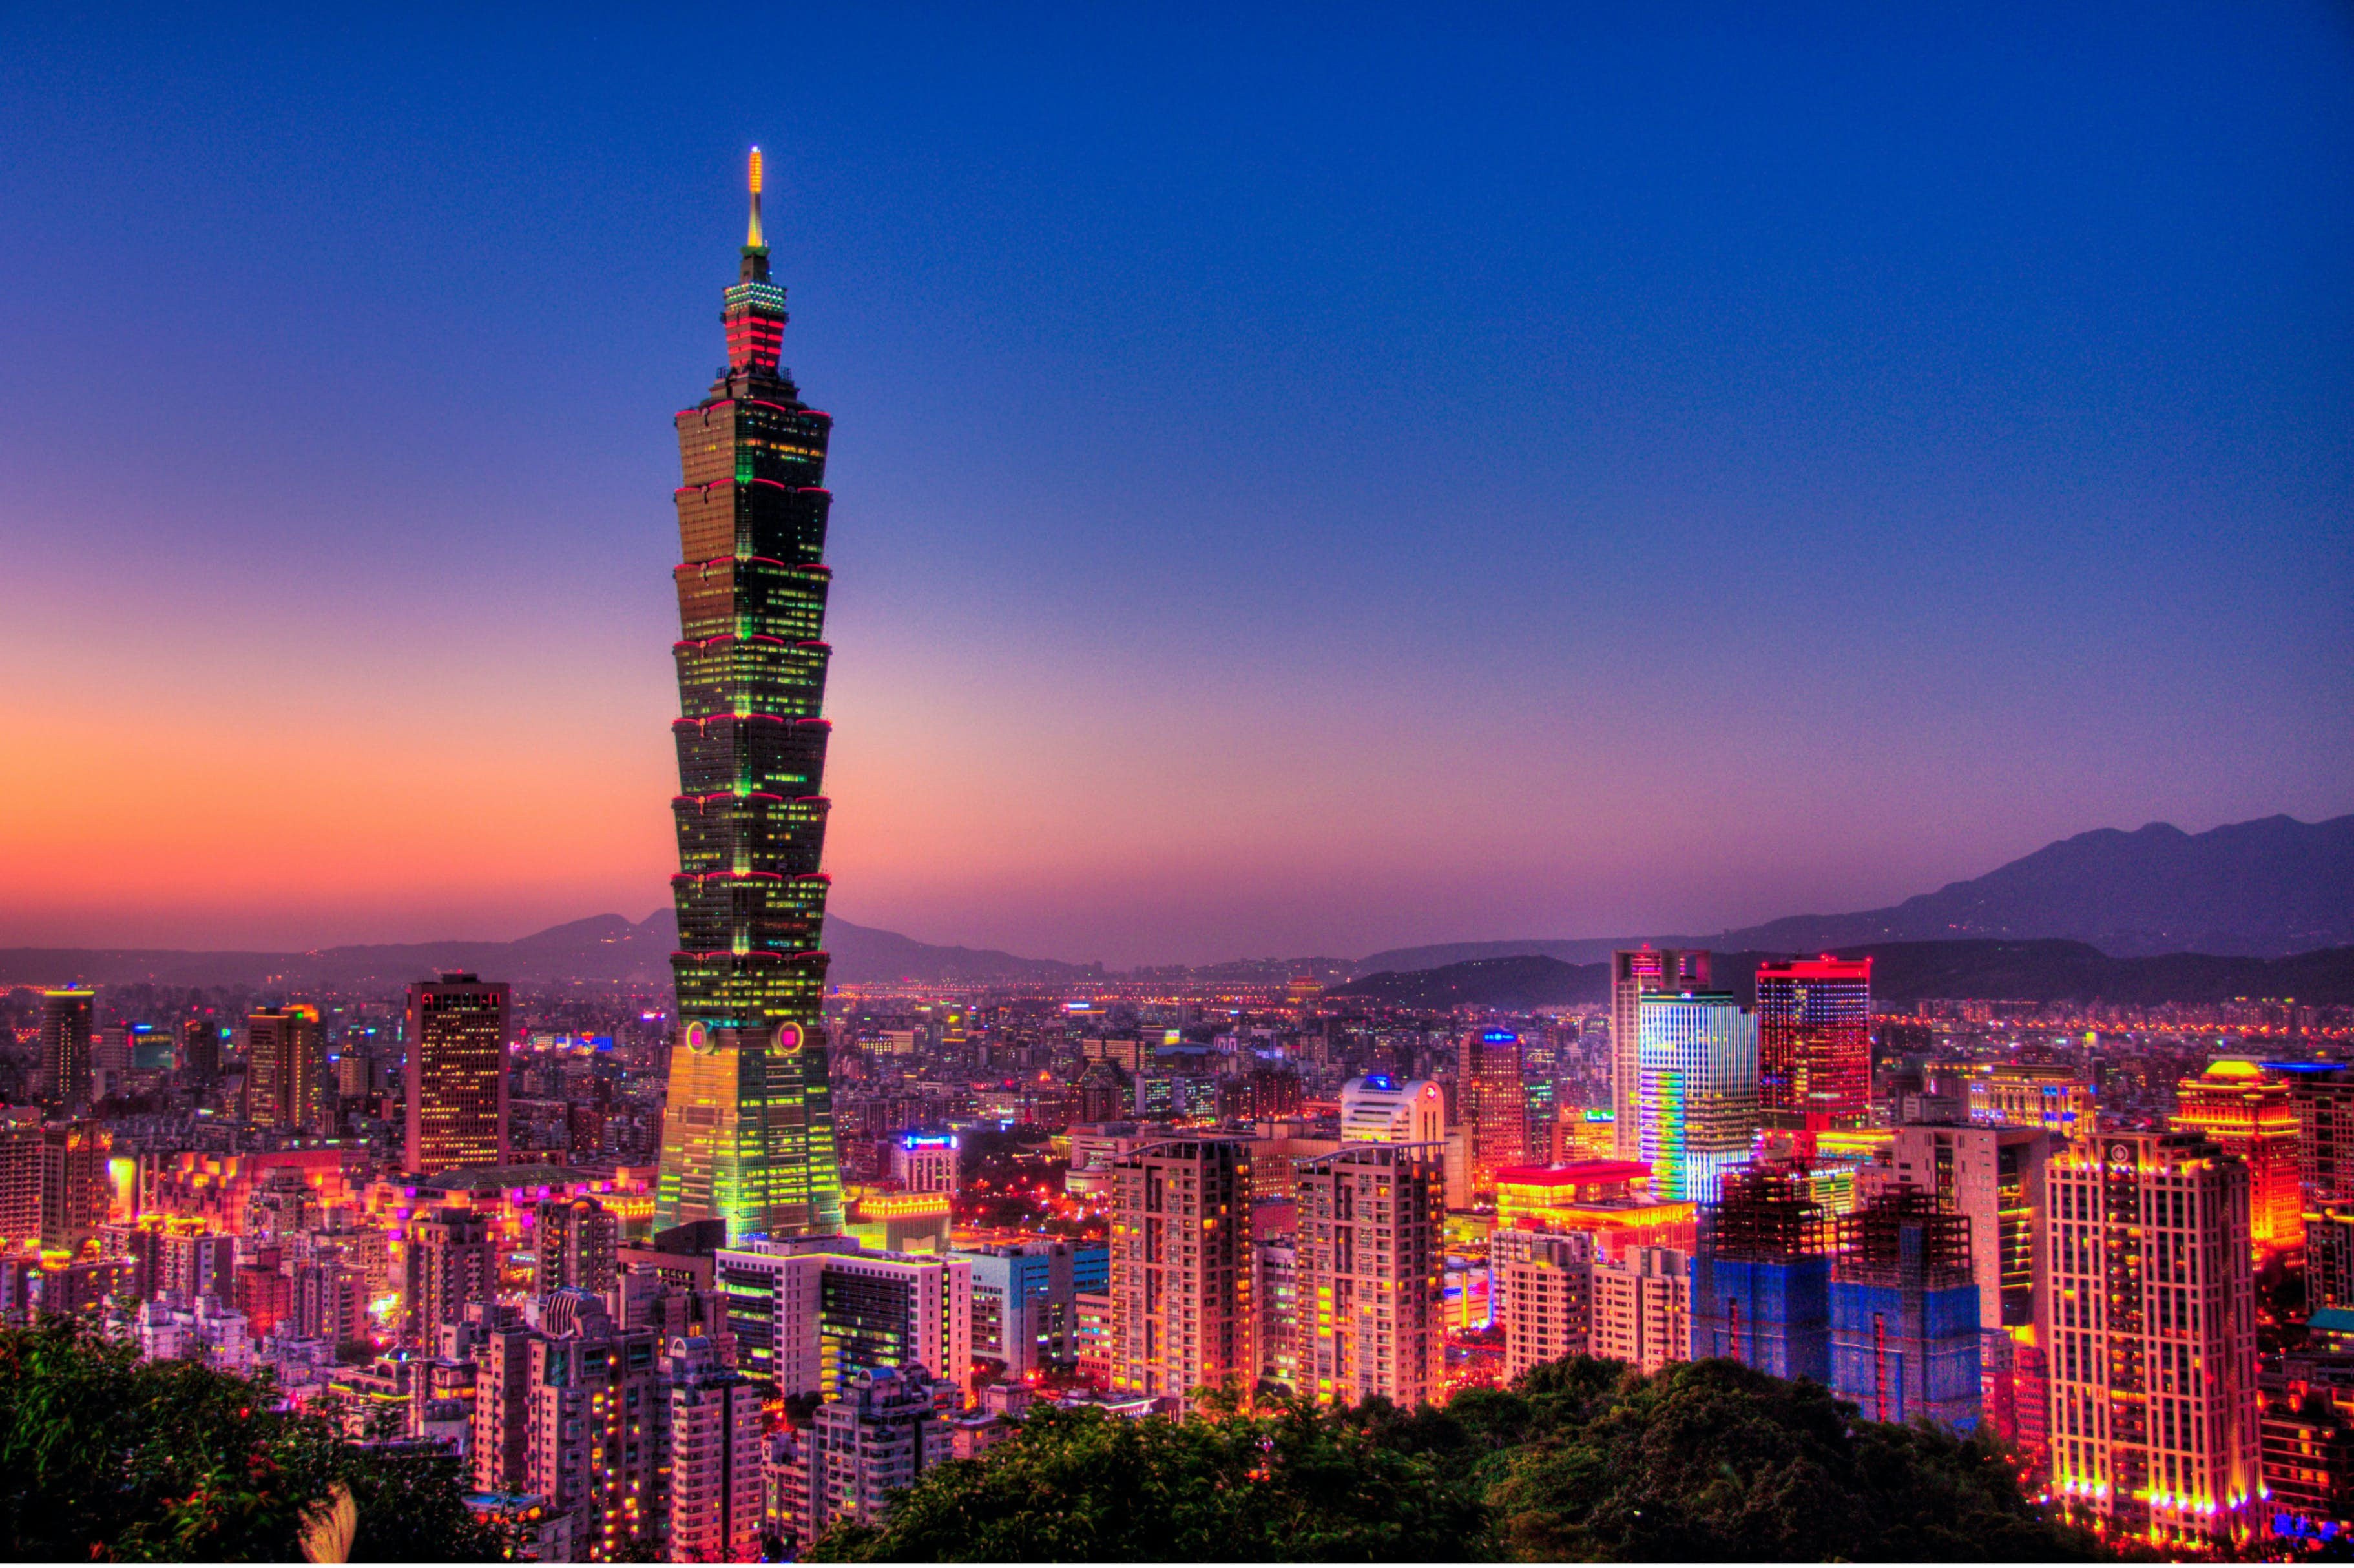 Discover the amazing Xinyi district of Taipei in 4 steps 1